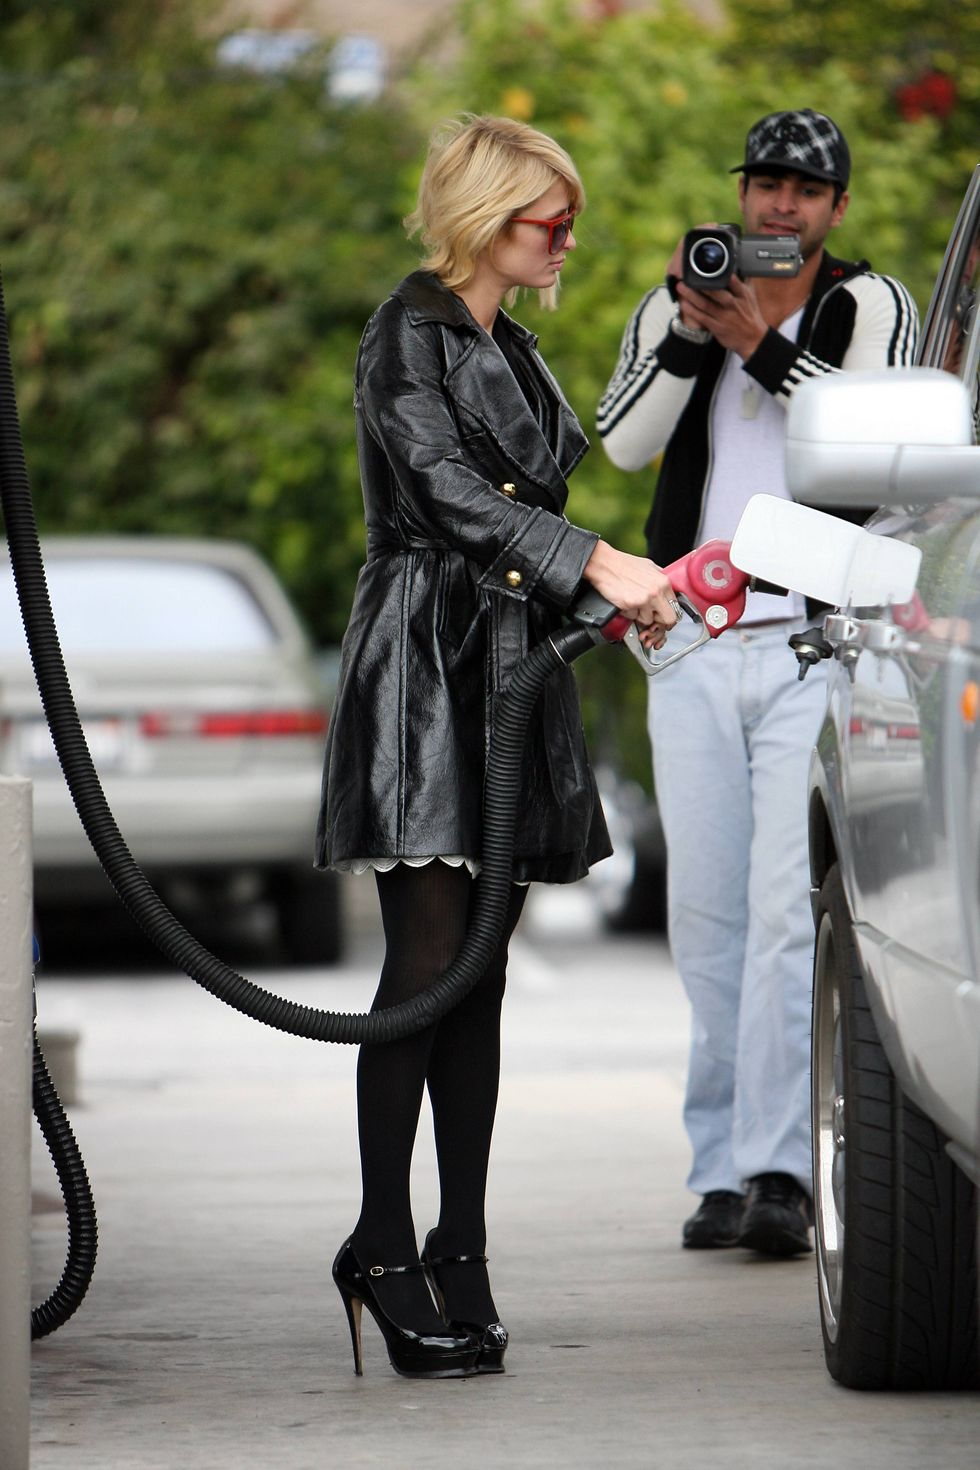 paris-hilton-high-heels-candids-at-gas-station-01